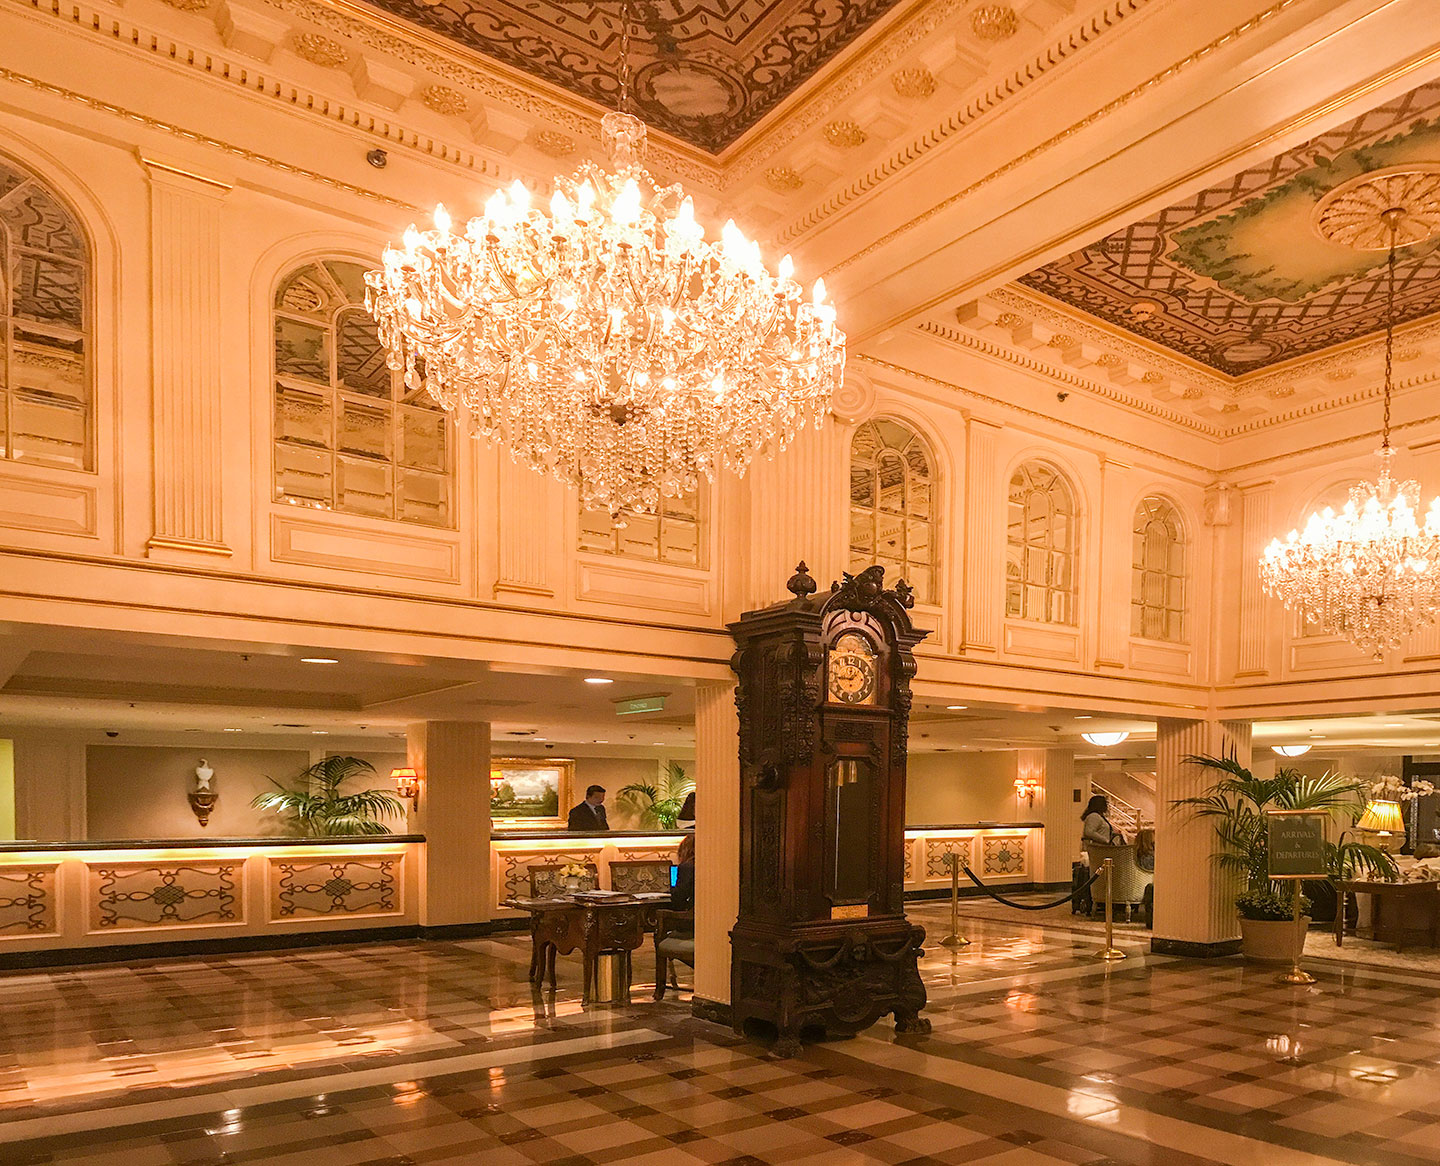 French Quarter Hotels Where To Stay In New Orleans Ann